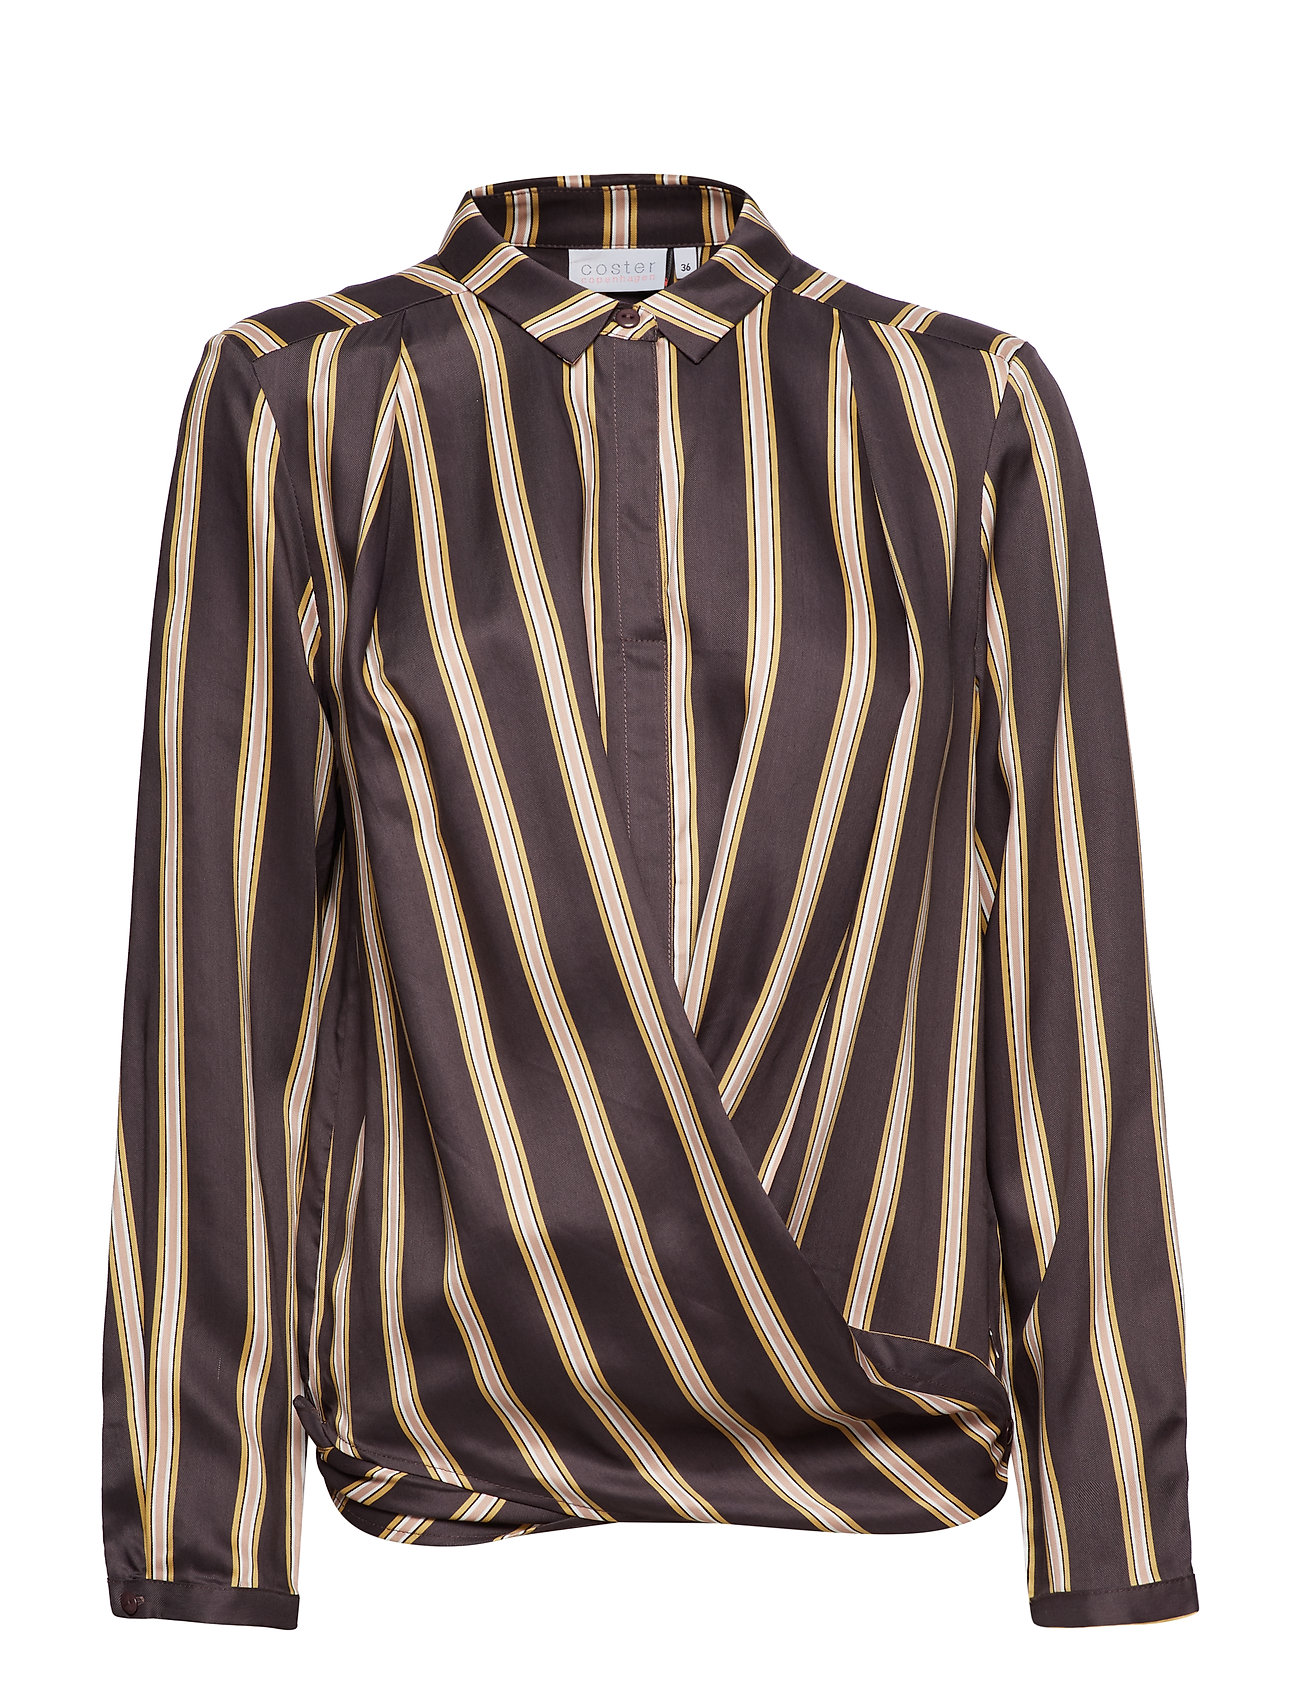 Coster Copenhagen Shirt in jacquard stripes w. button - GREY PLUM STRIPE